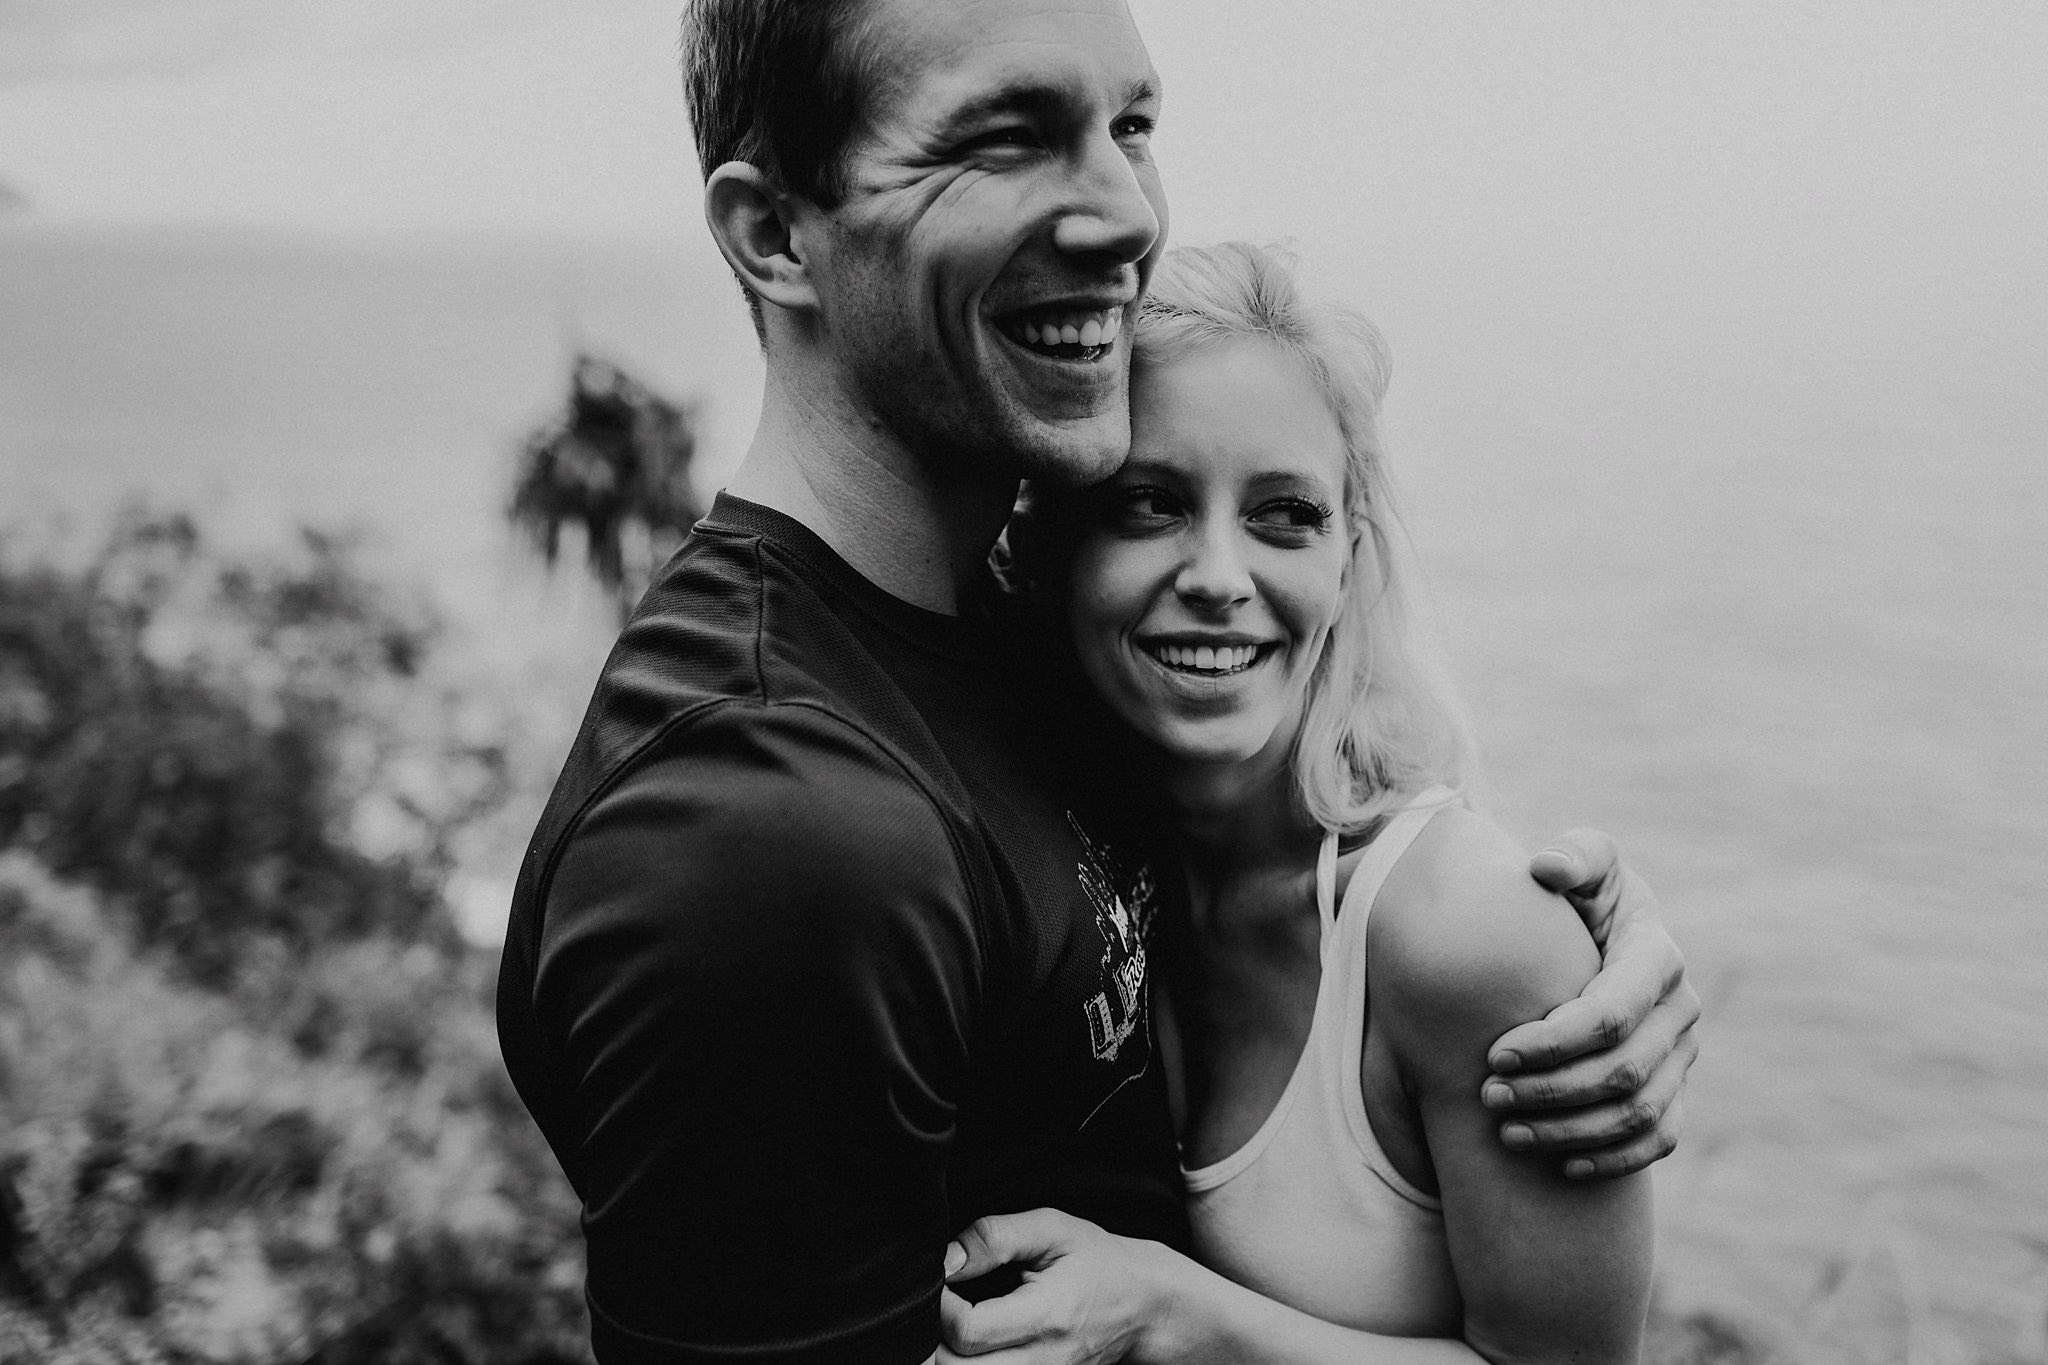 hawaii kauai elopement na pali coast mountain hike bride groom laughing photo